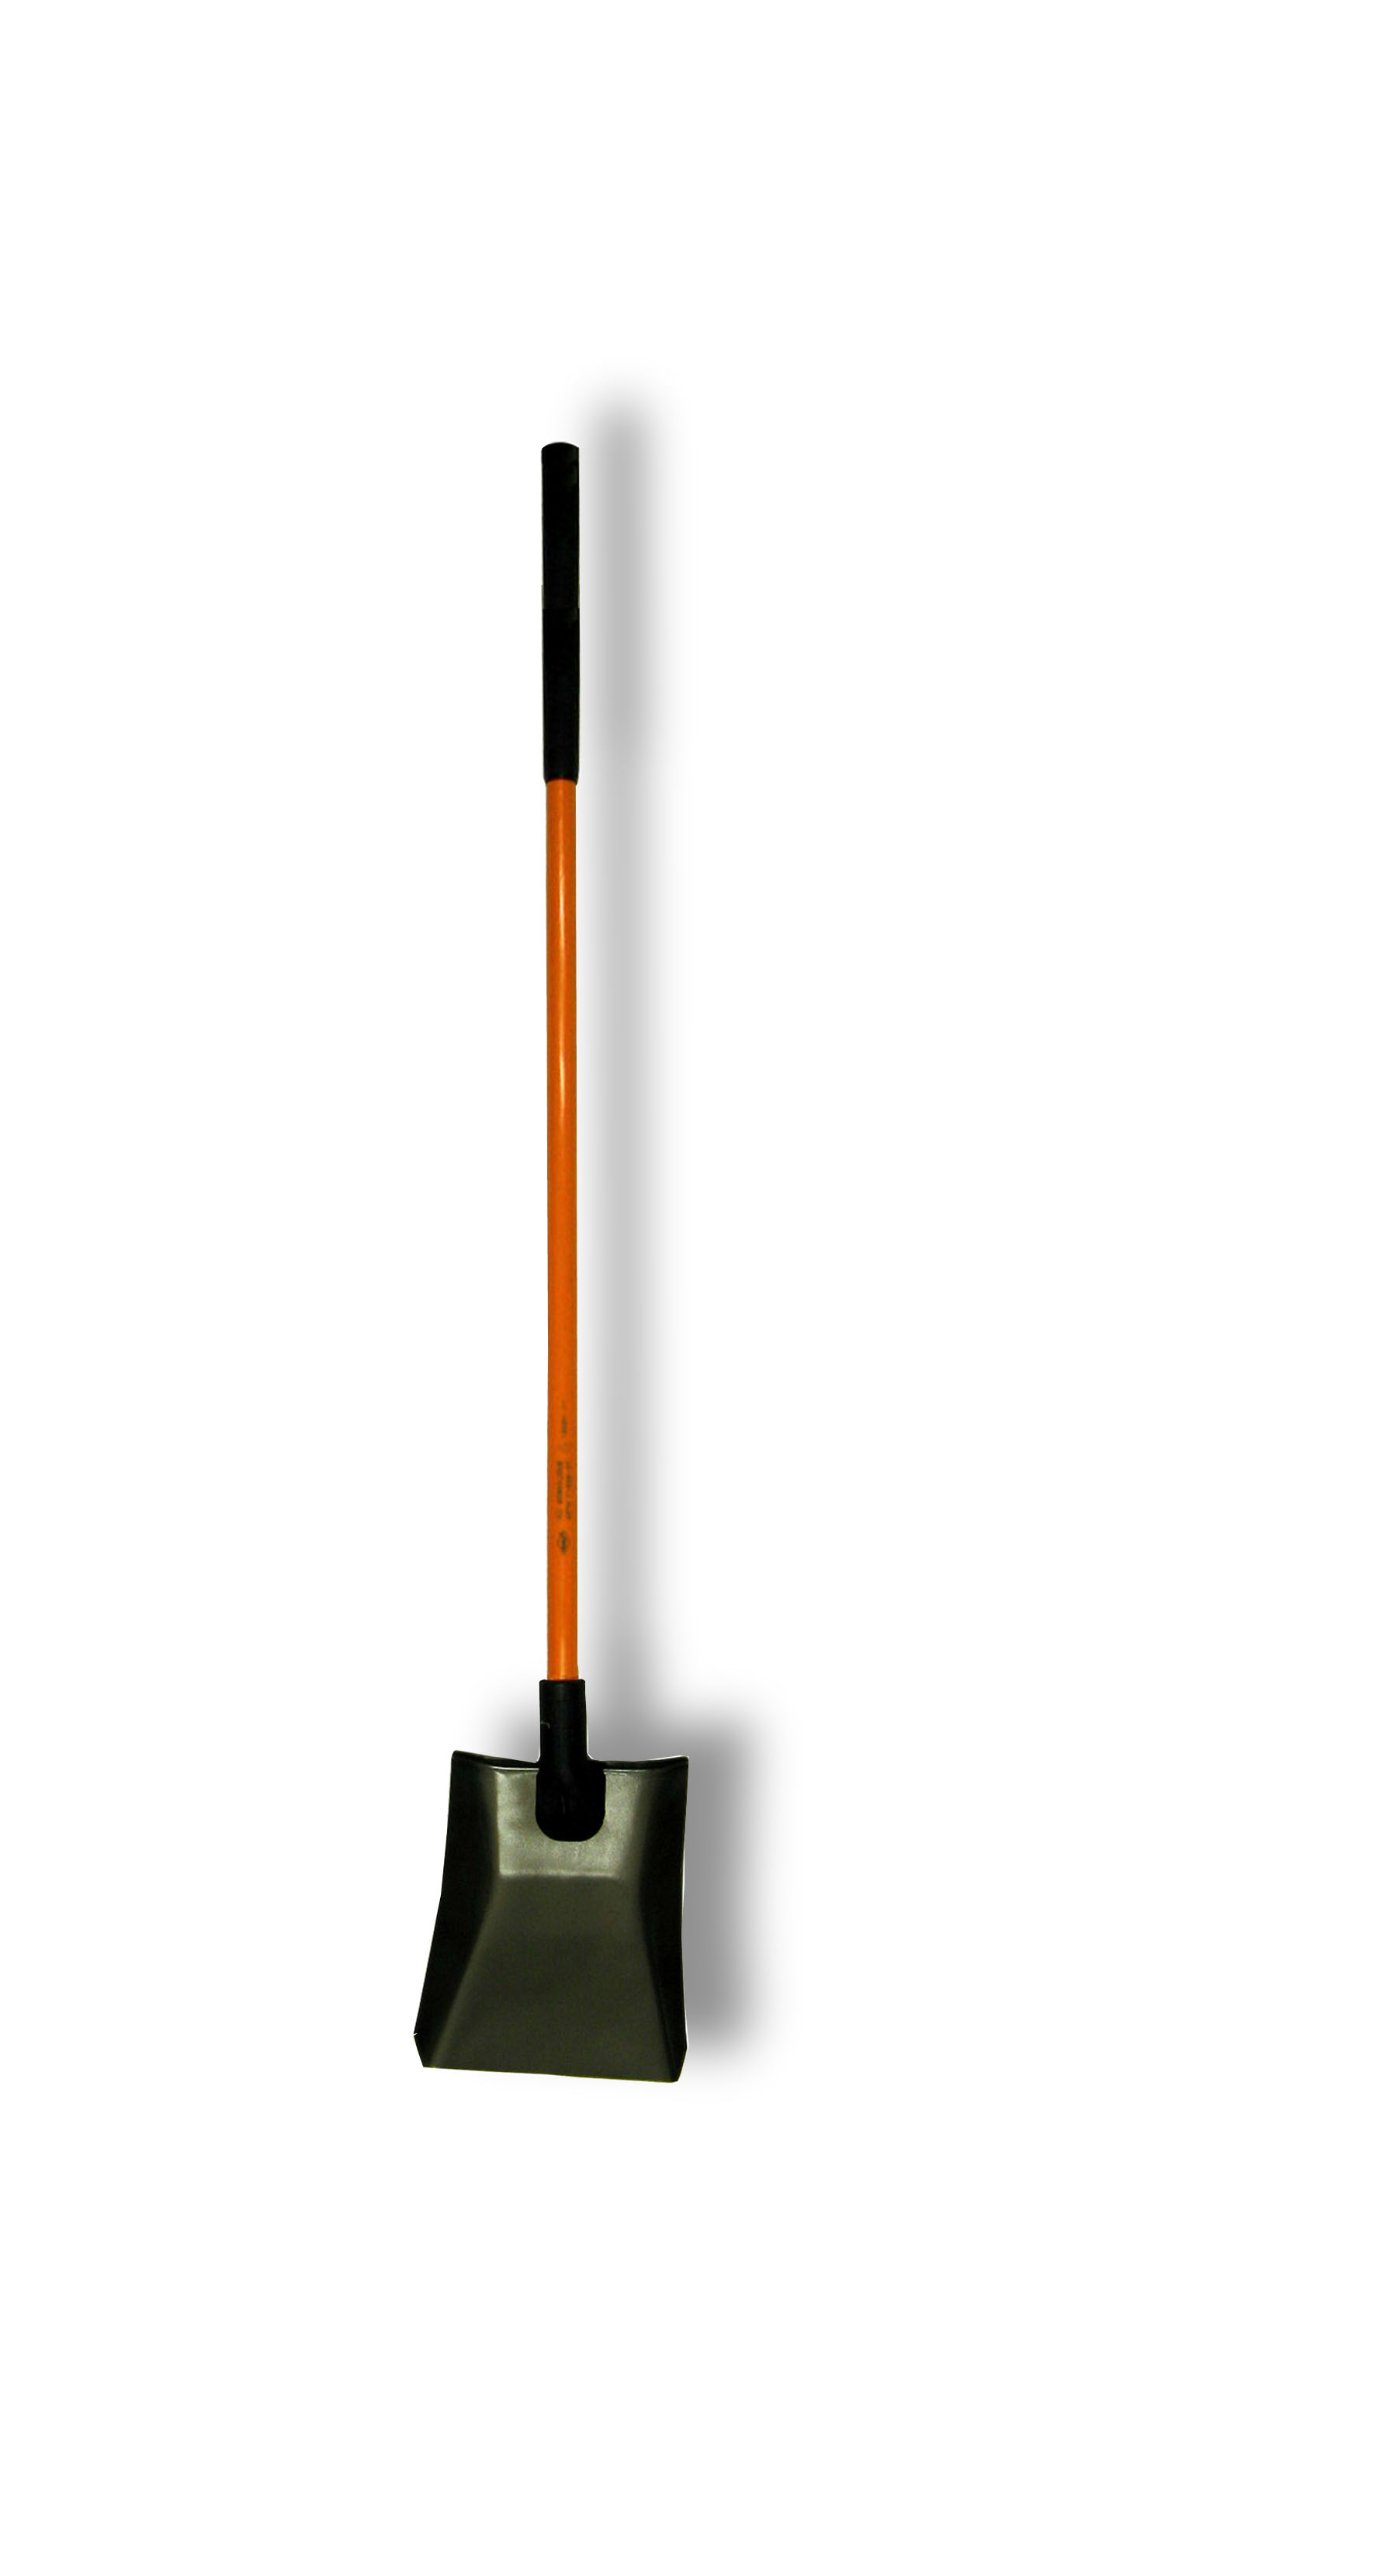 Nupla NC-SP14LPY Power Pylon Square Point Shovel with Heavy-Duty 14 Gauge Solid Back Blade and Butt Grip, 48'' Solid Long Handle